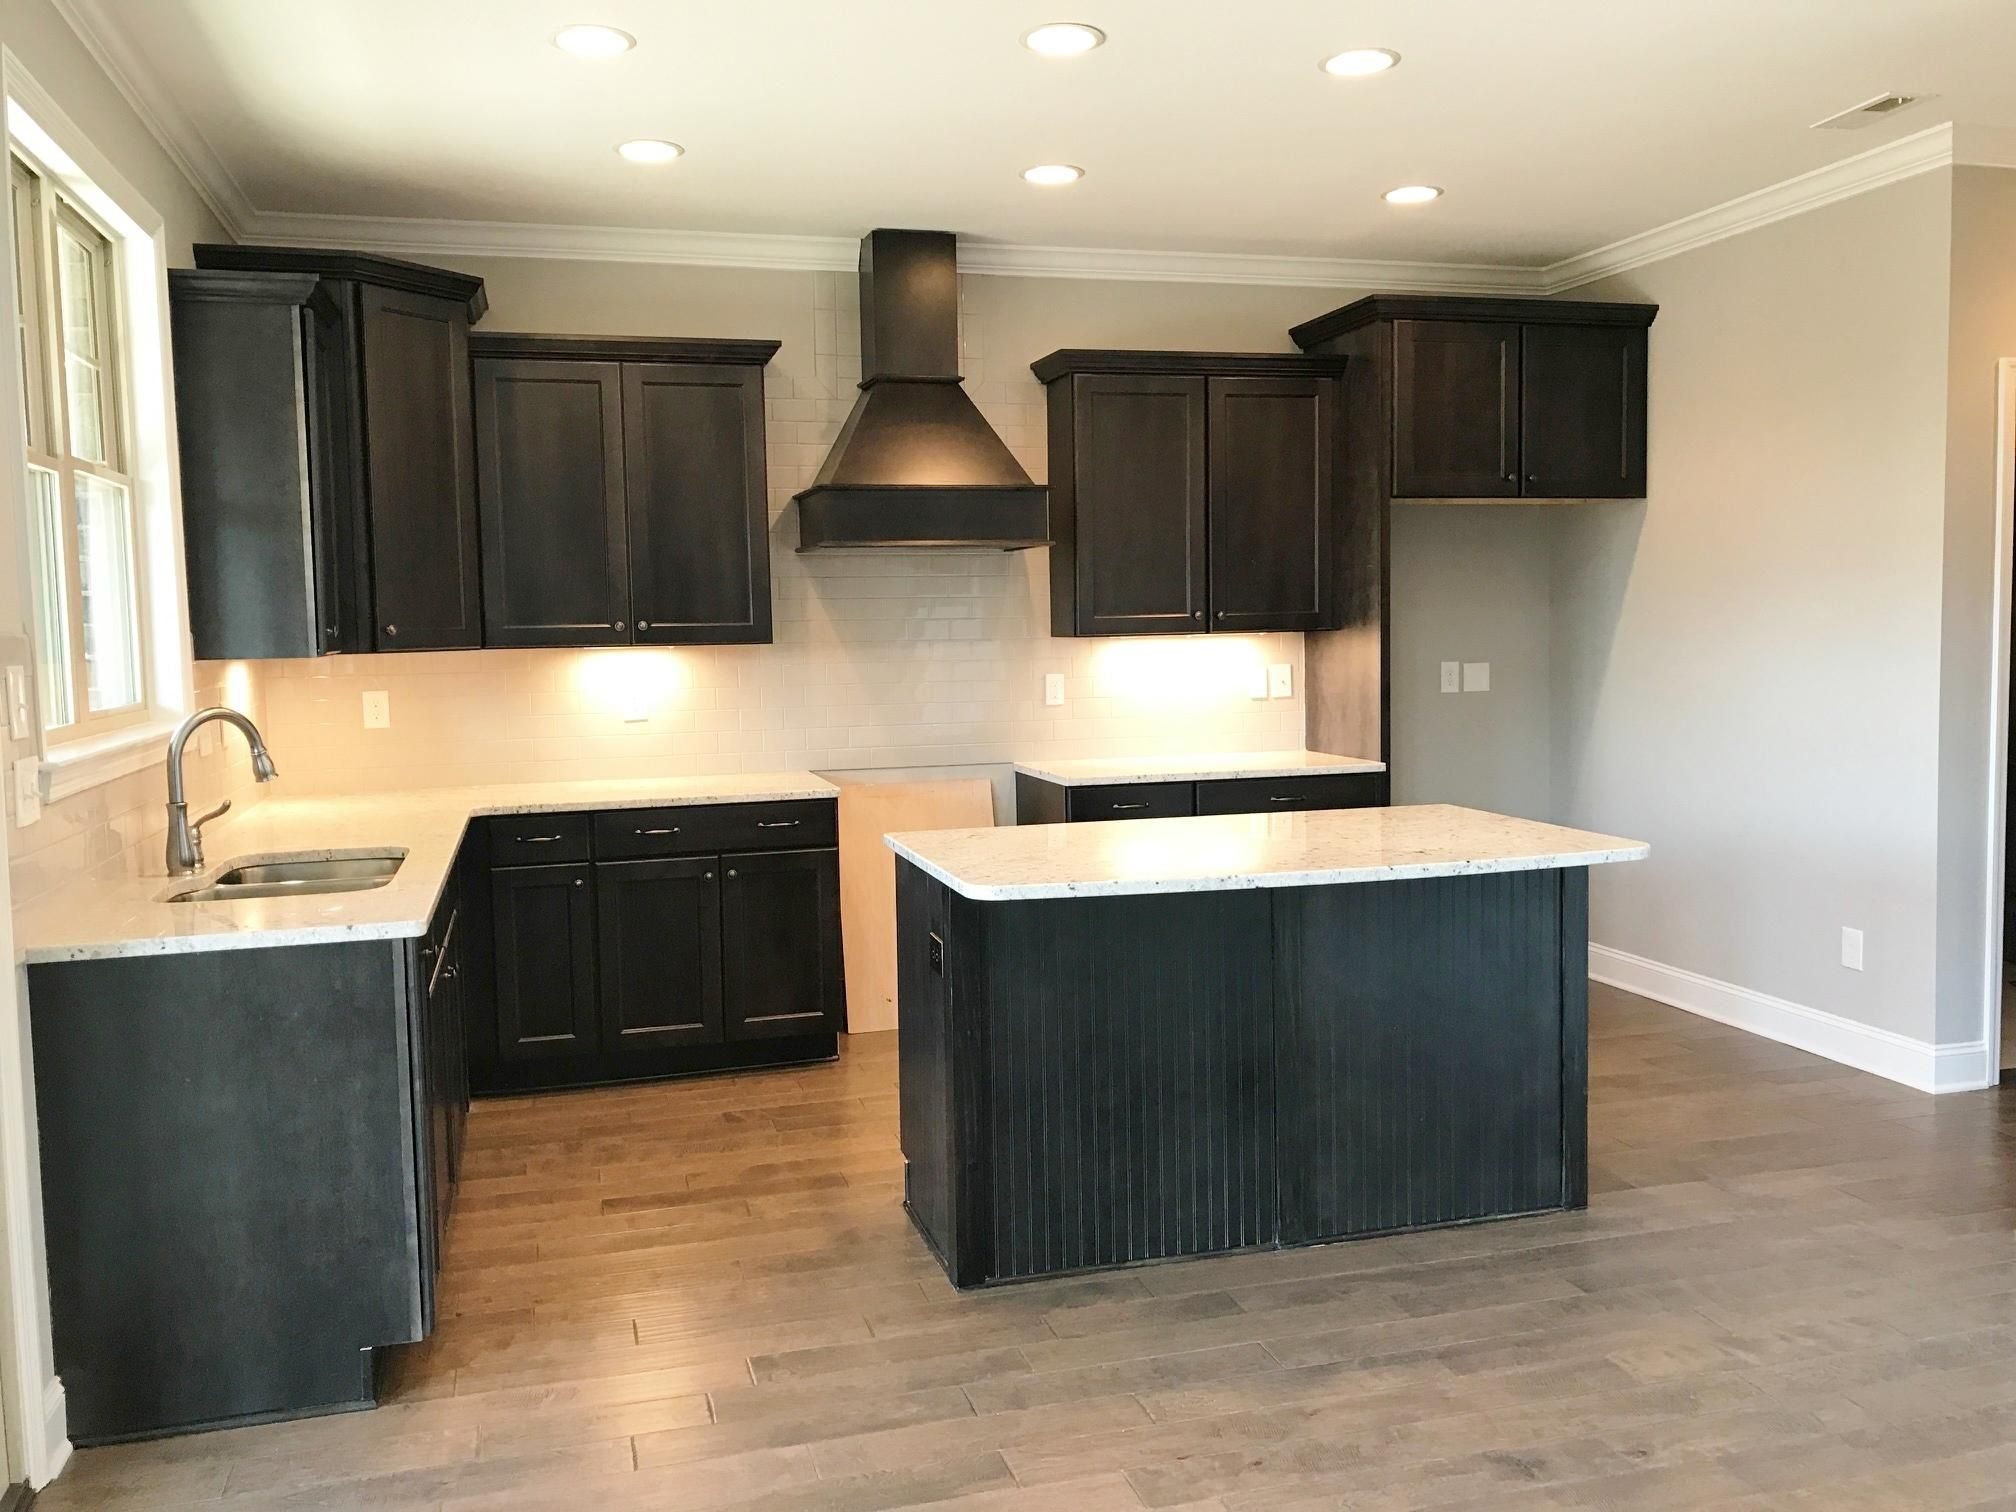 Great kitchen with island